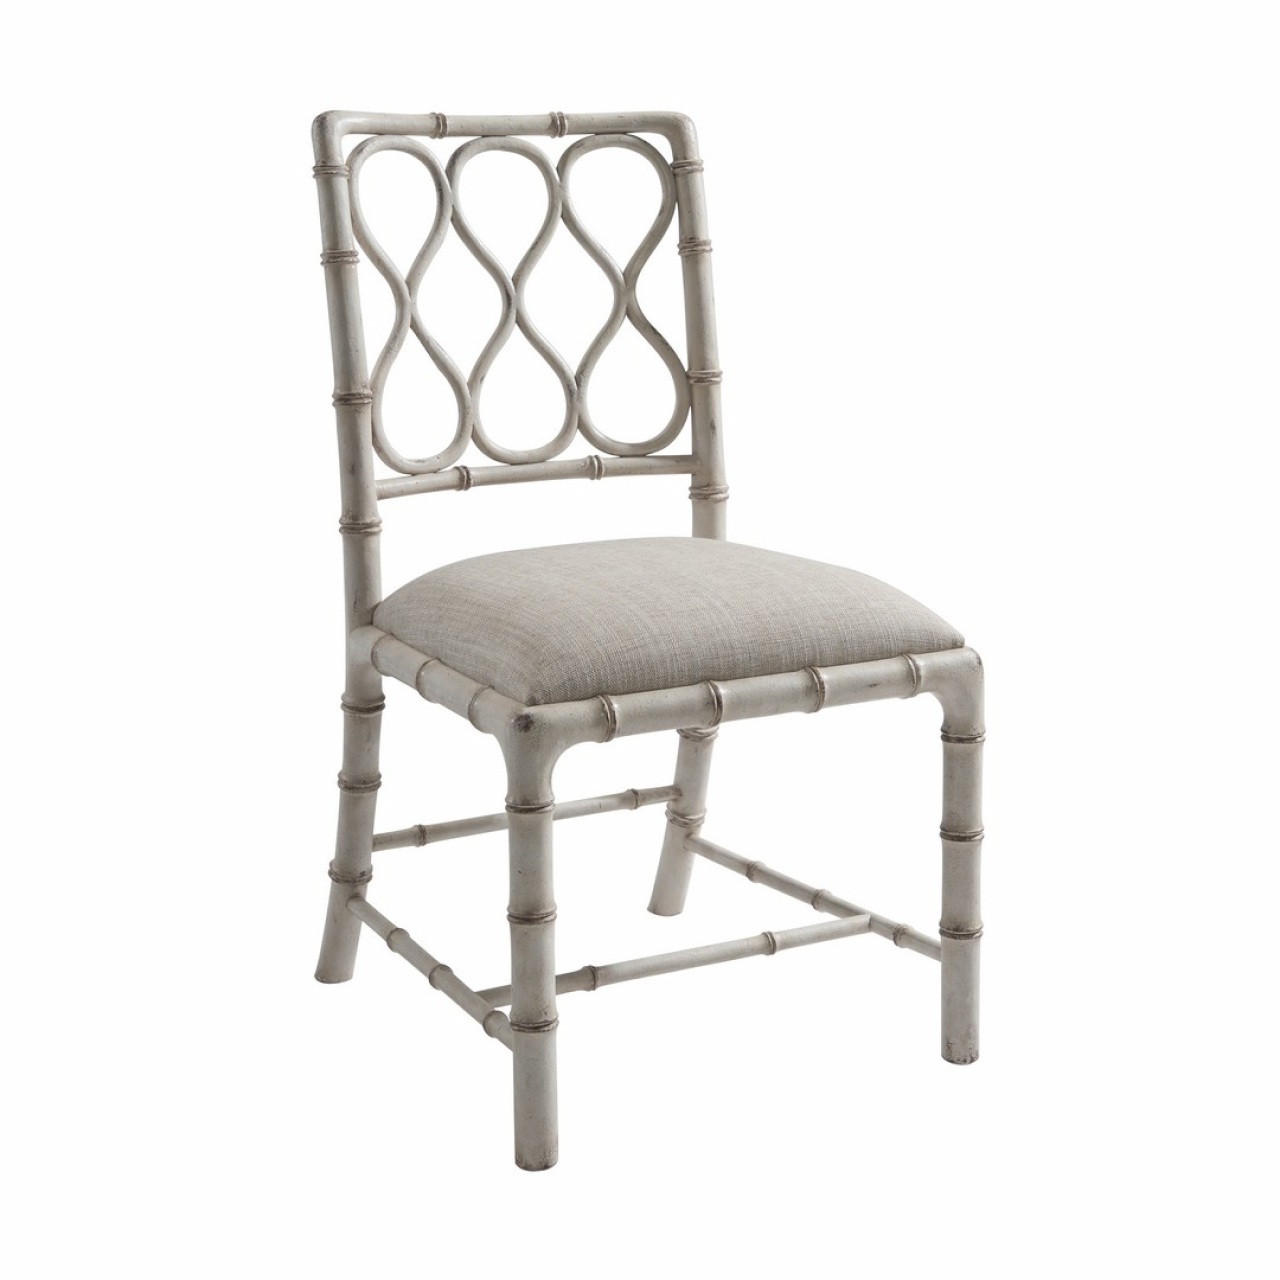 THEODORE ALEXANDER Cream Claydon Chair